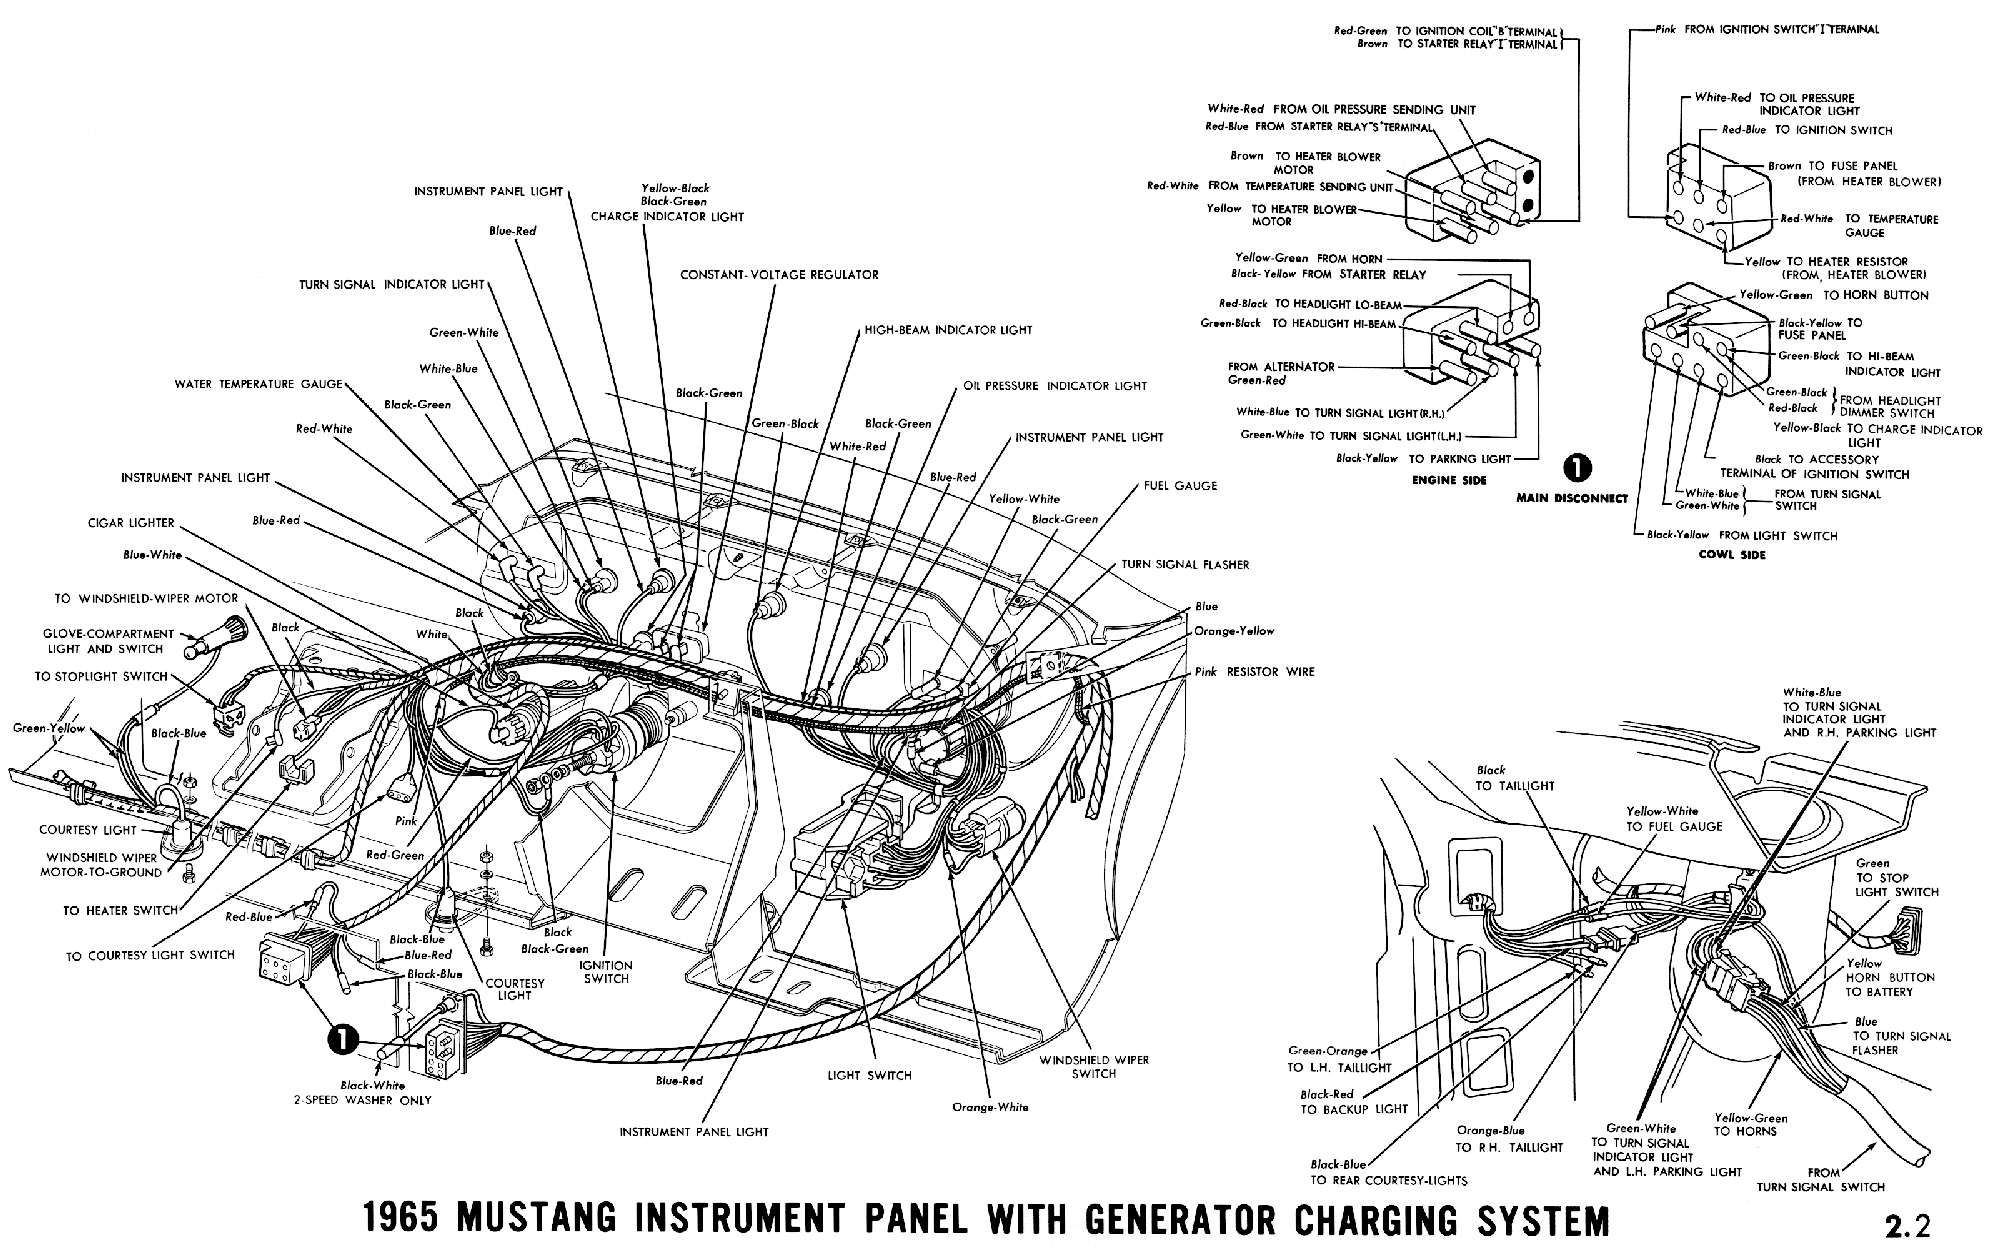 ford mustang engine diagram  1965 mustang instrument panel alternator charging system 1965 mustang wiring diagrams average joe restoration